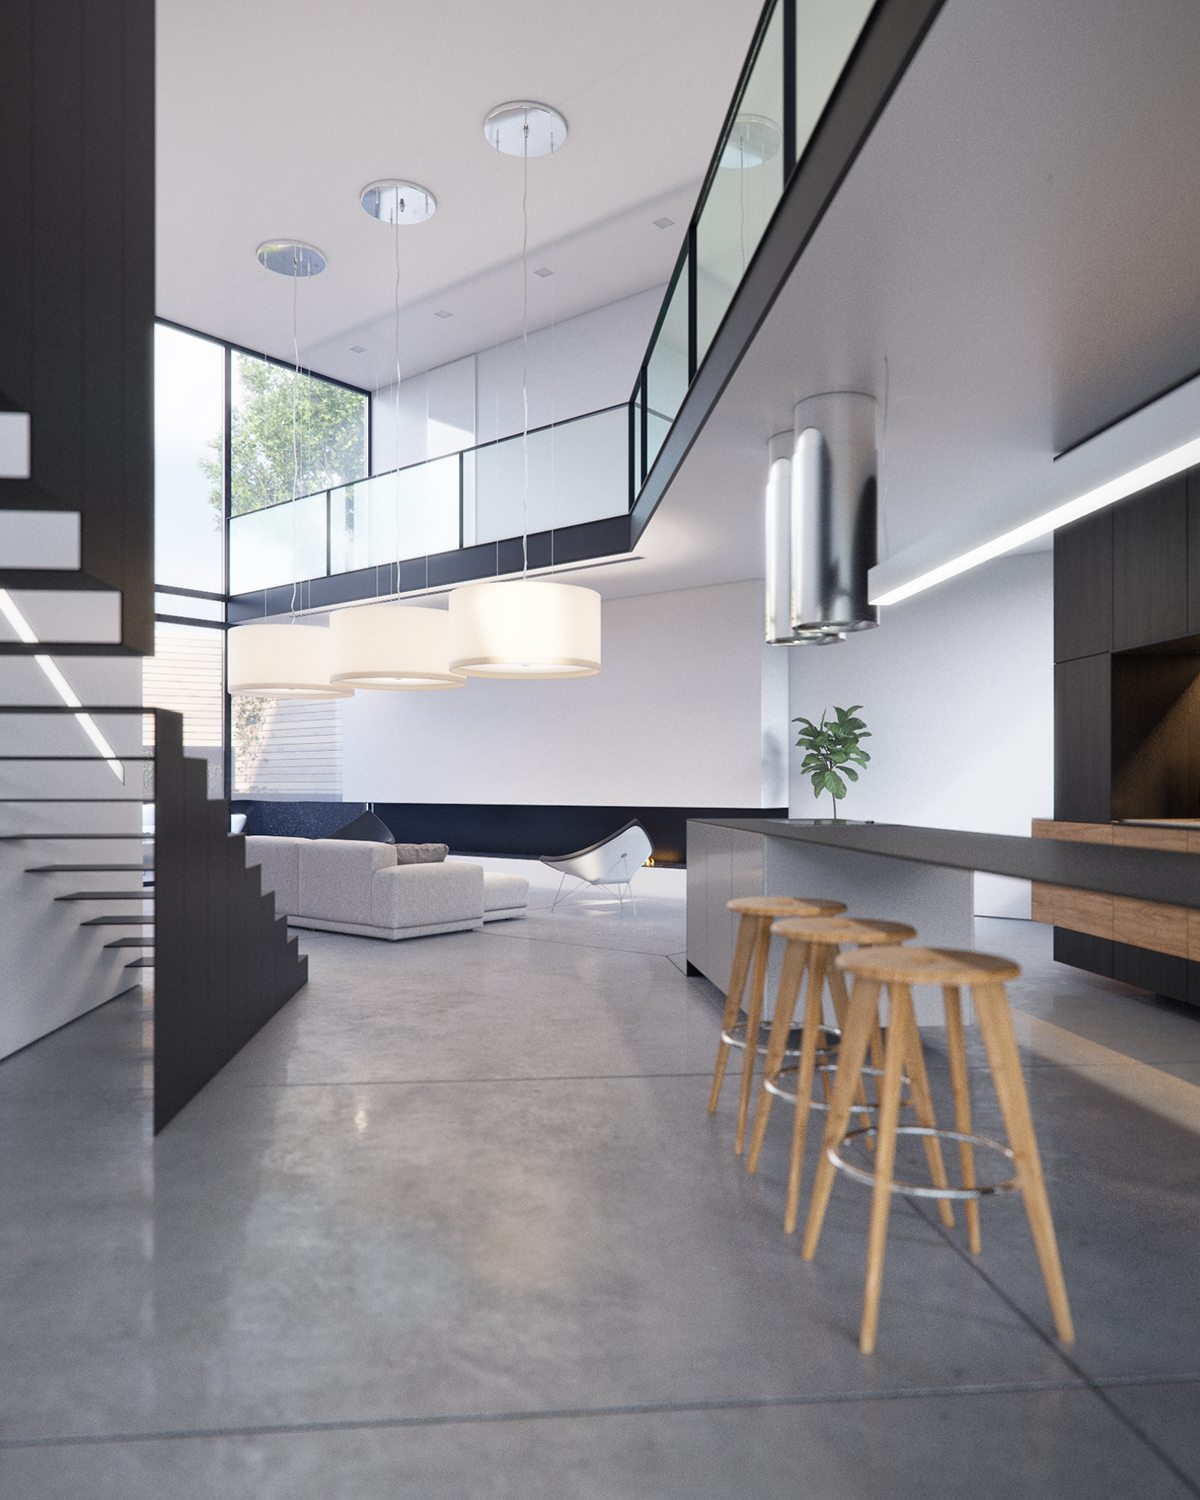 Angled Modern Interior Architecture - 3 modern villas that embrace indoor outdoor living